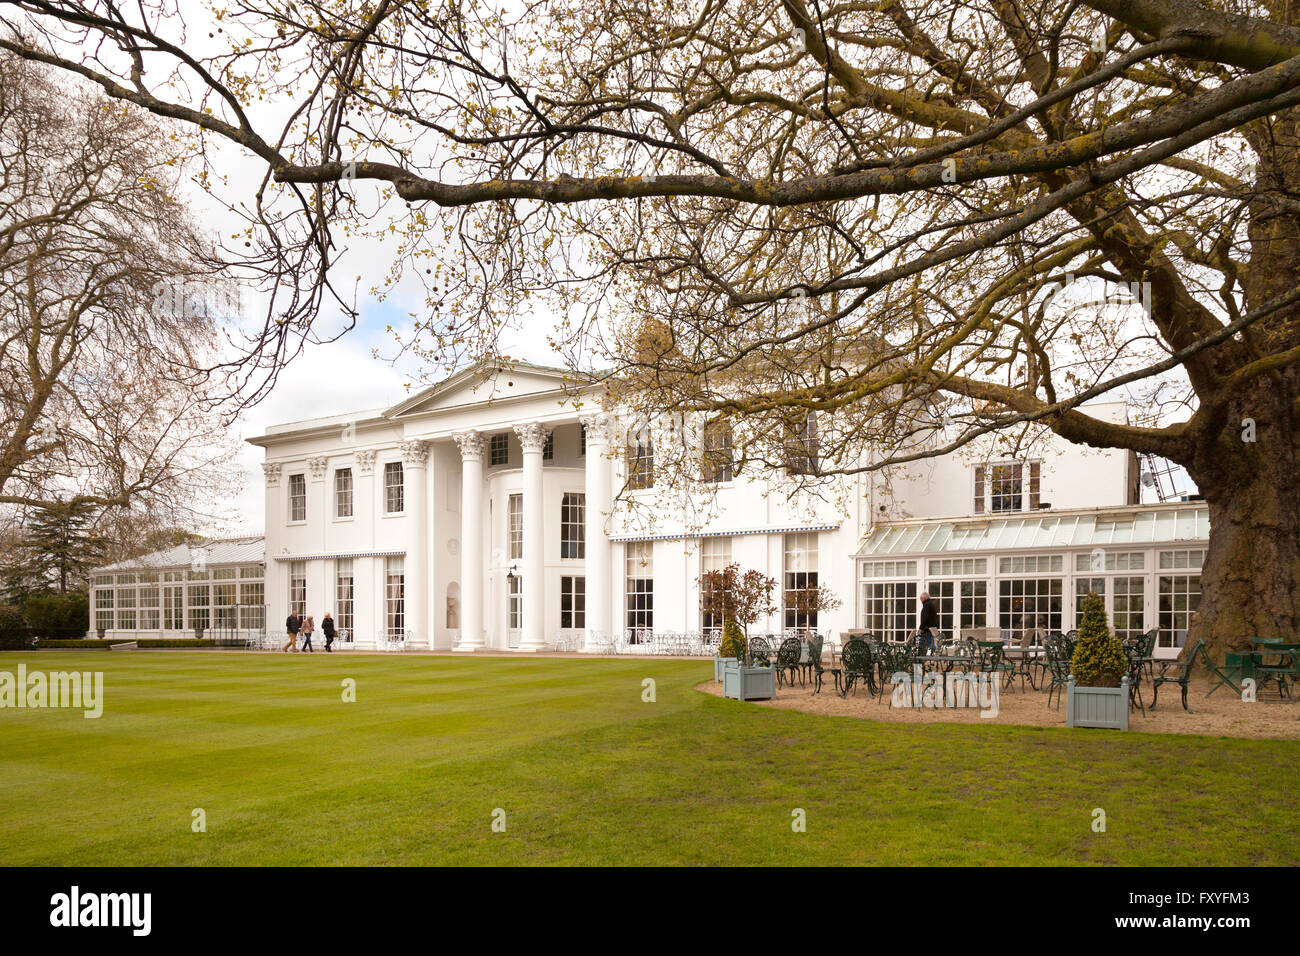 The Hurlingham Club, an exclusive sports club in Fulham, London UK - Stock Image